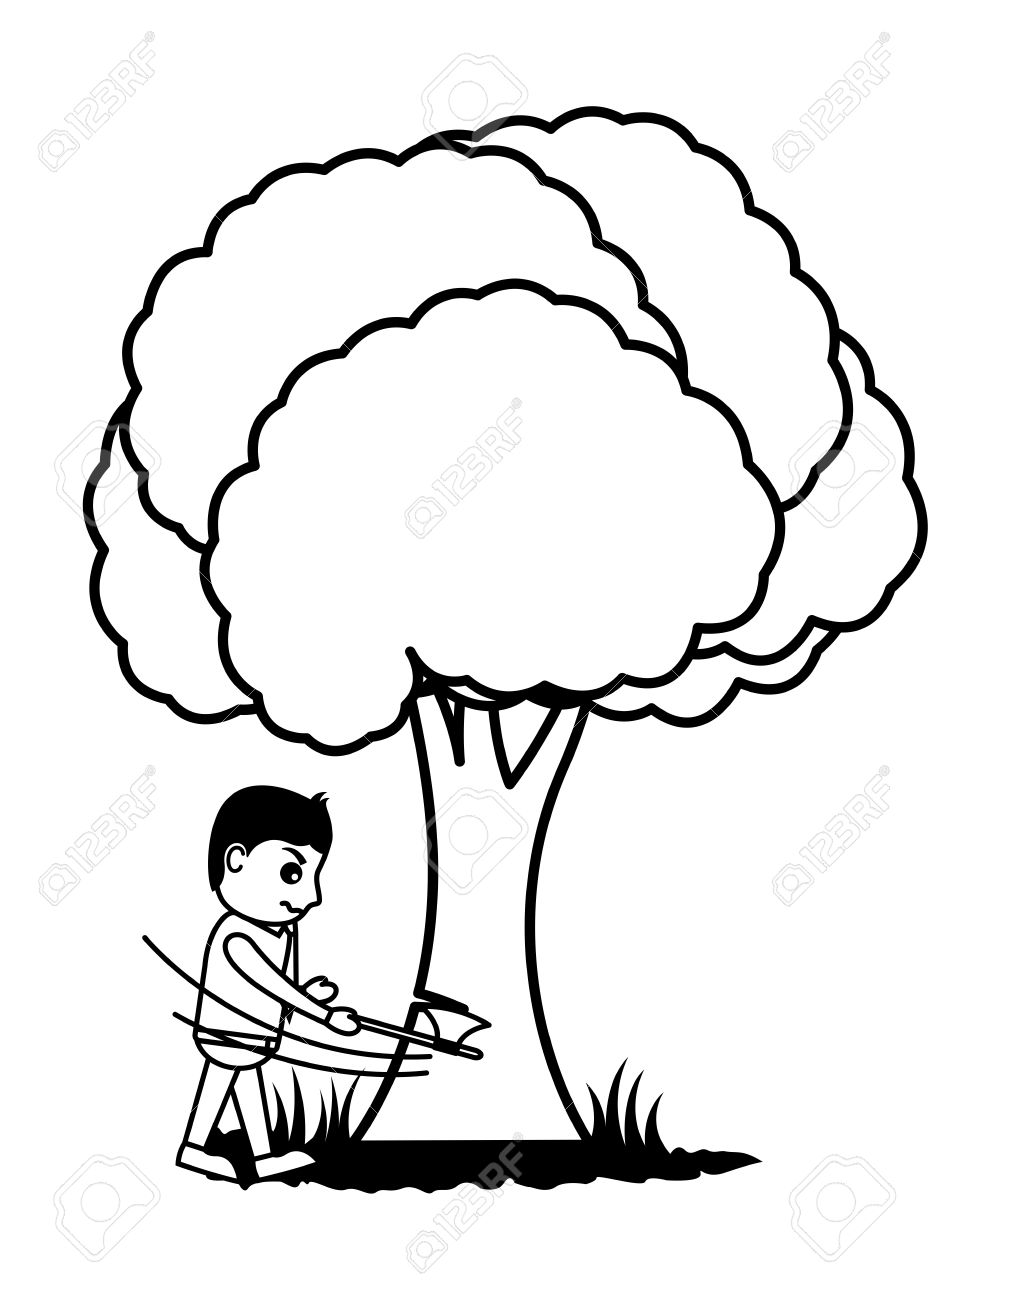 Cutting trees clipart black and white 5 » Clipart Station.